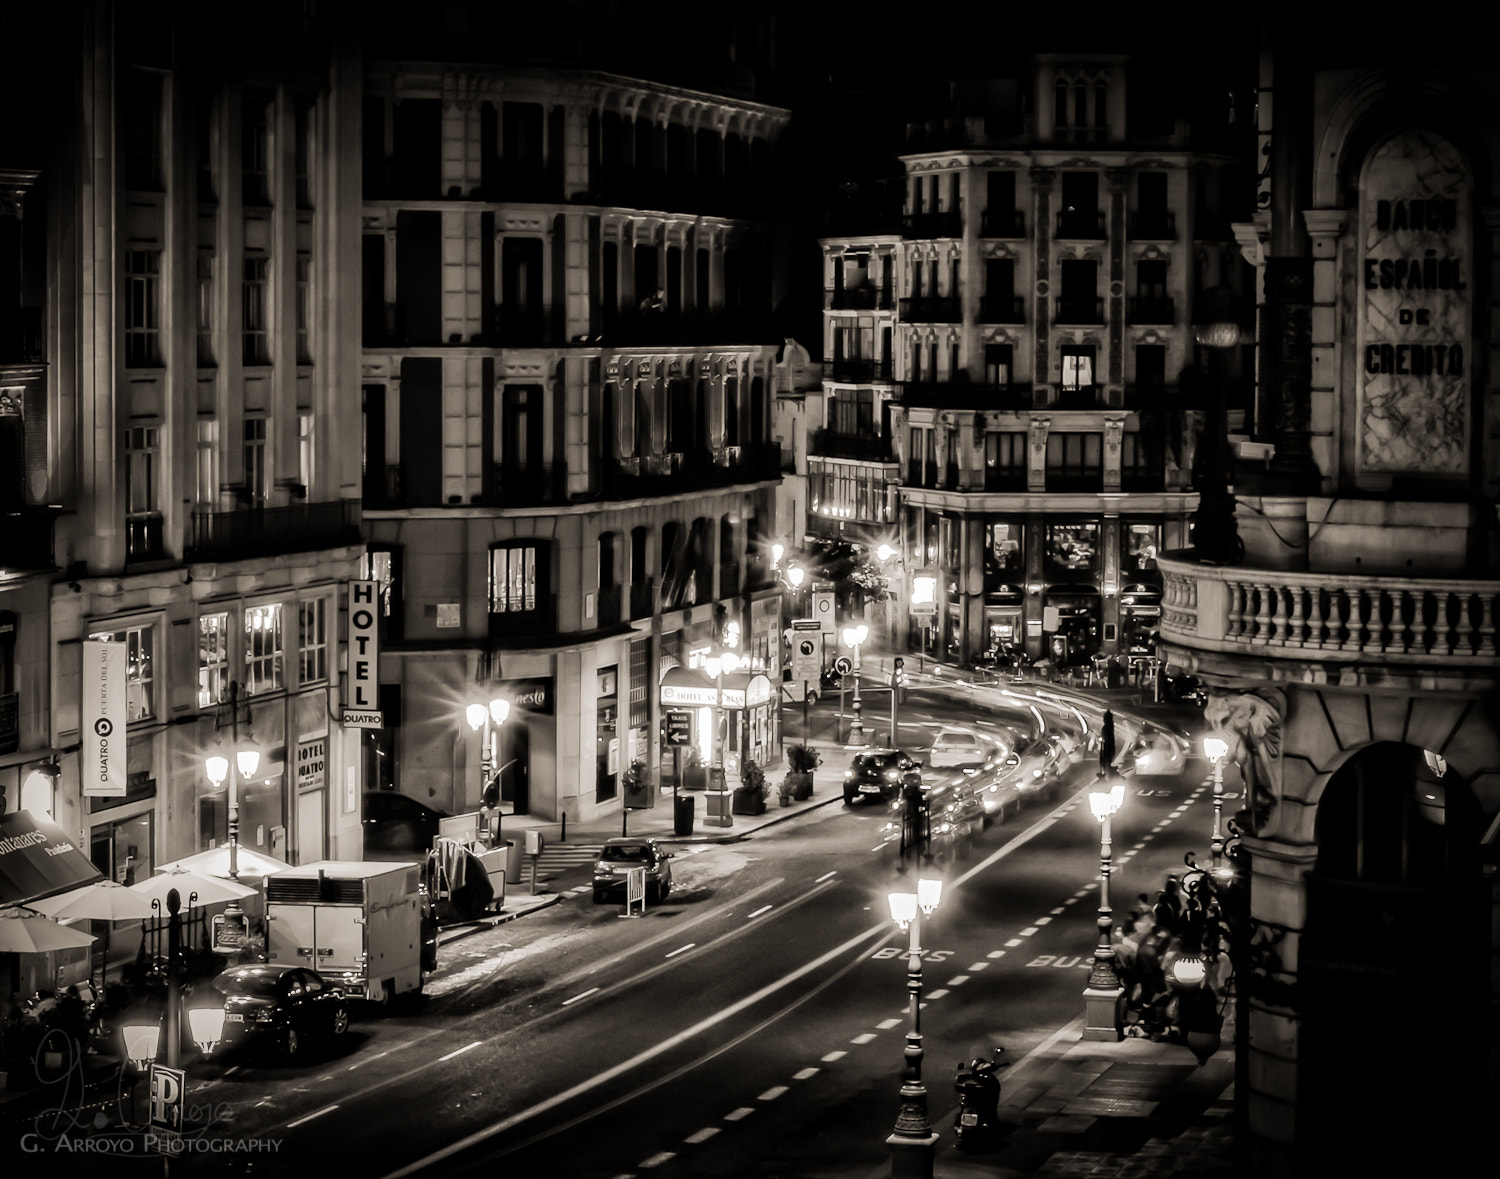 Photograph Madrid at night by Giovanni Arroyo on 500px